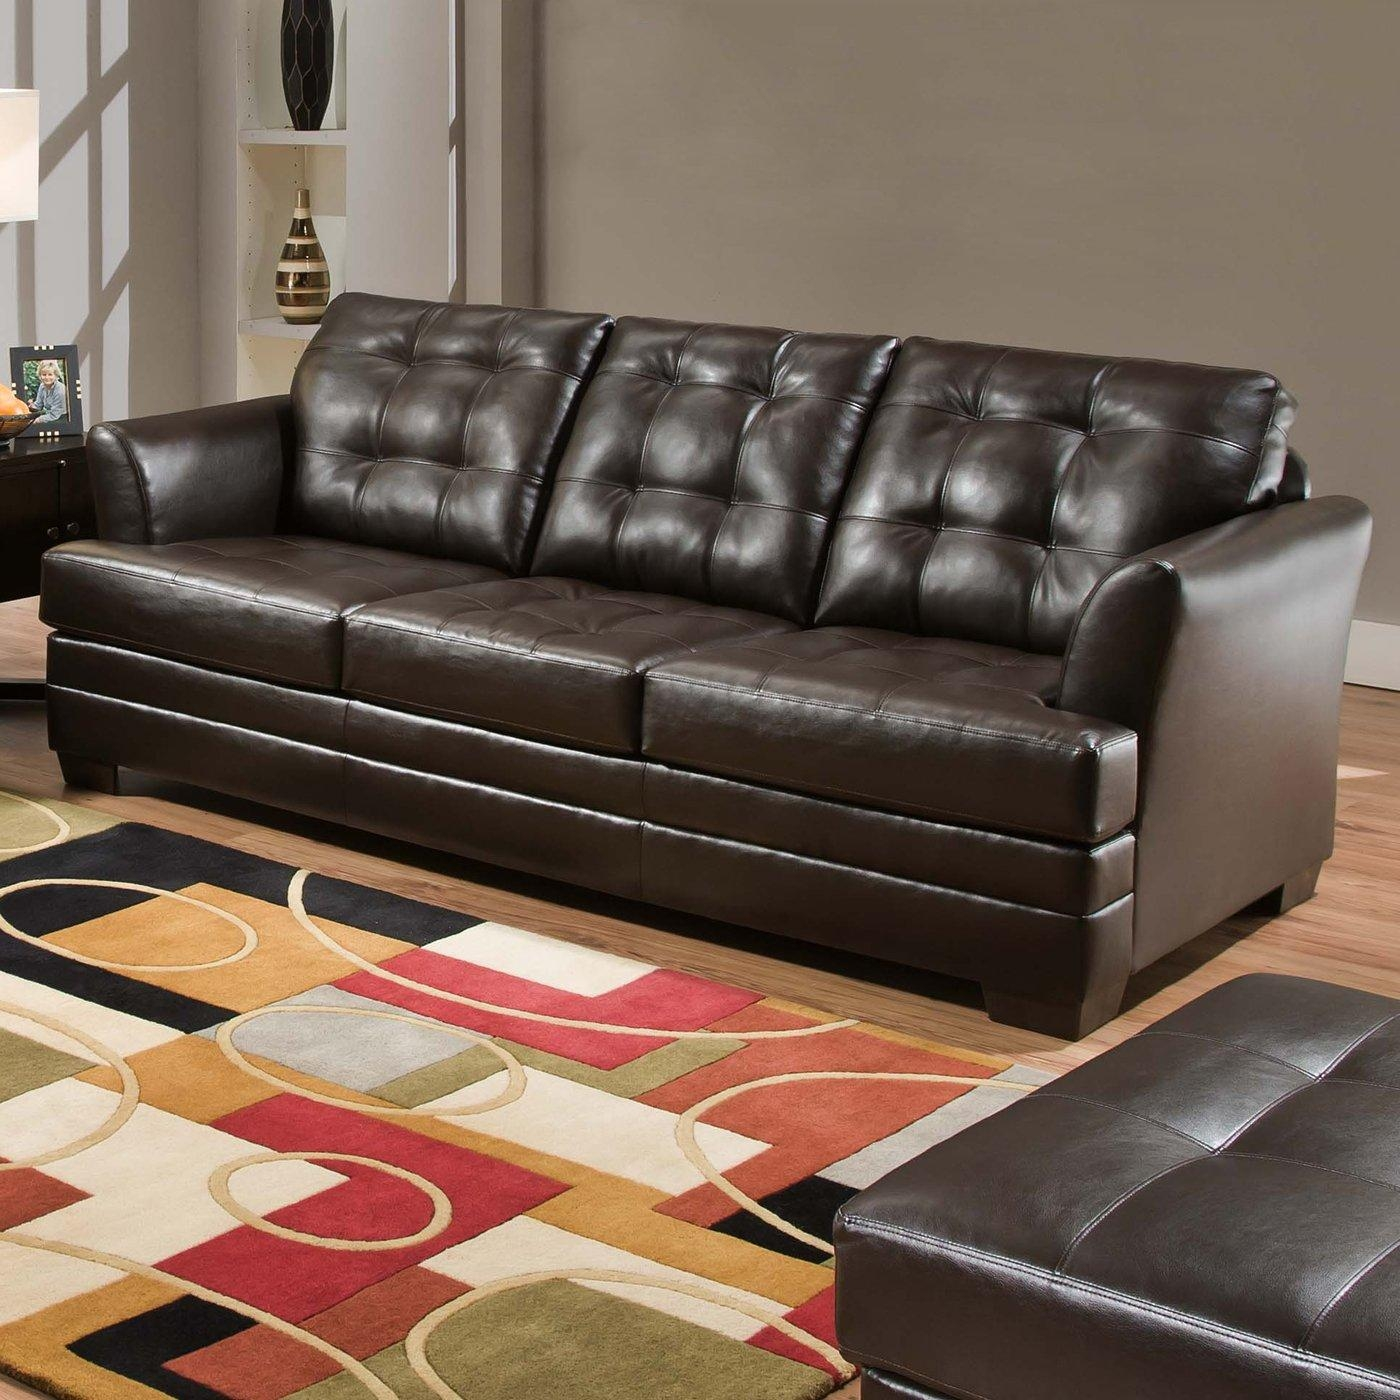 ashley sleeper sofa 2 seater and recliner chair 20 best collection of simmons sofas ideas